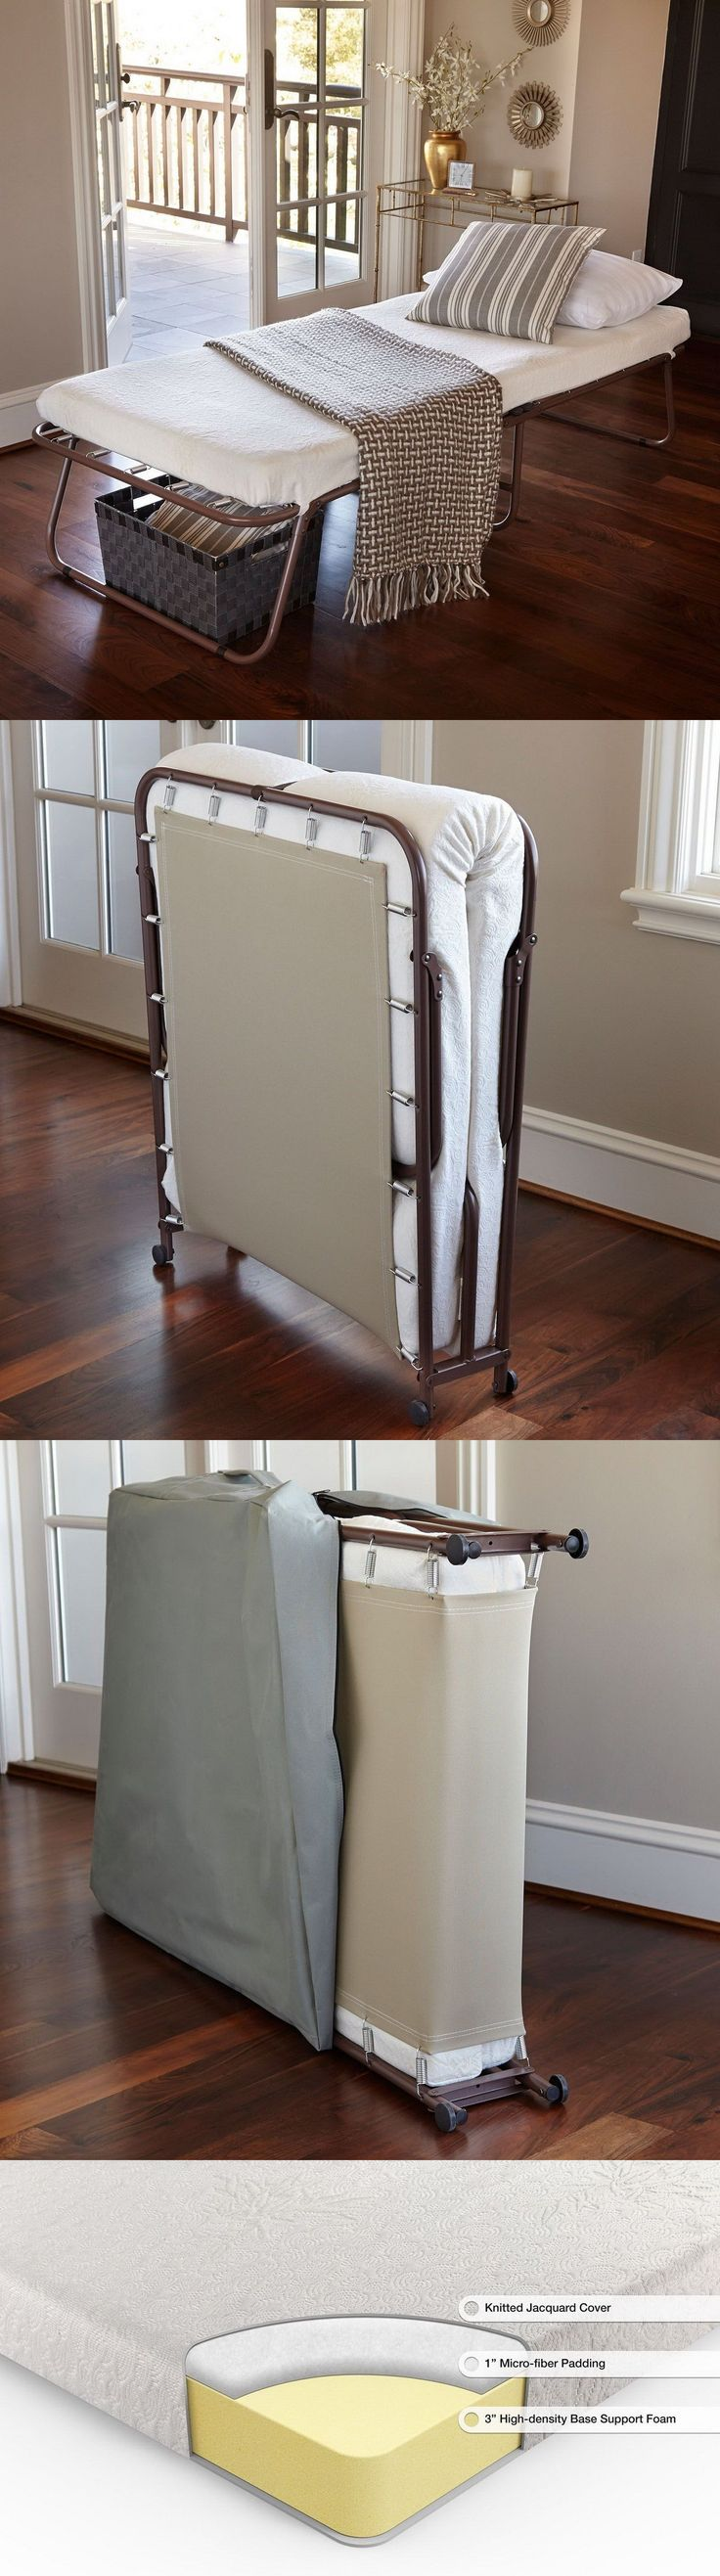 Hideaway Guest Bed Best 25 Folding Guest Bed Ideas On Pinterest Folding Beds Diy